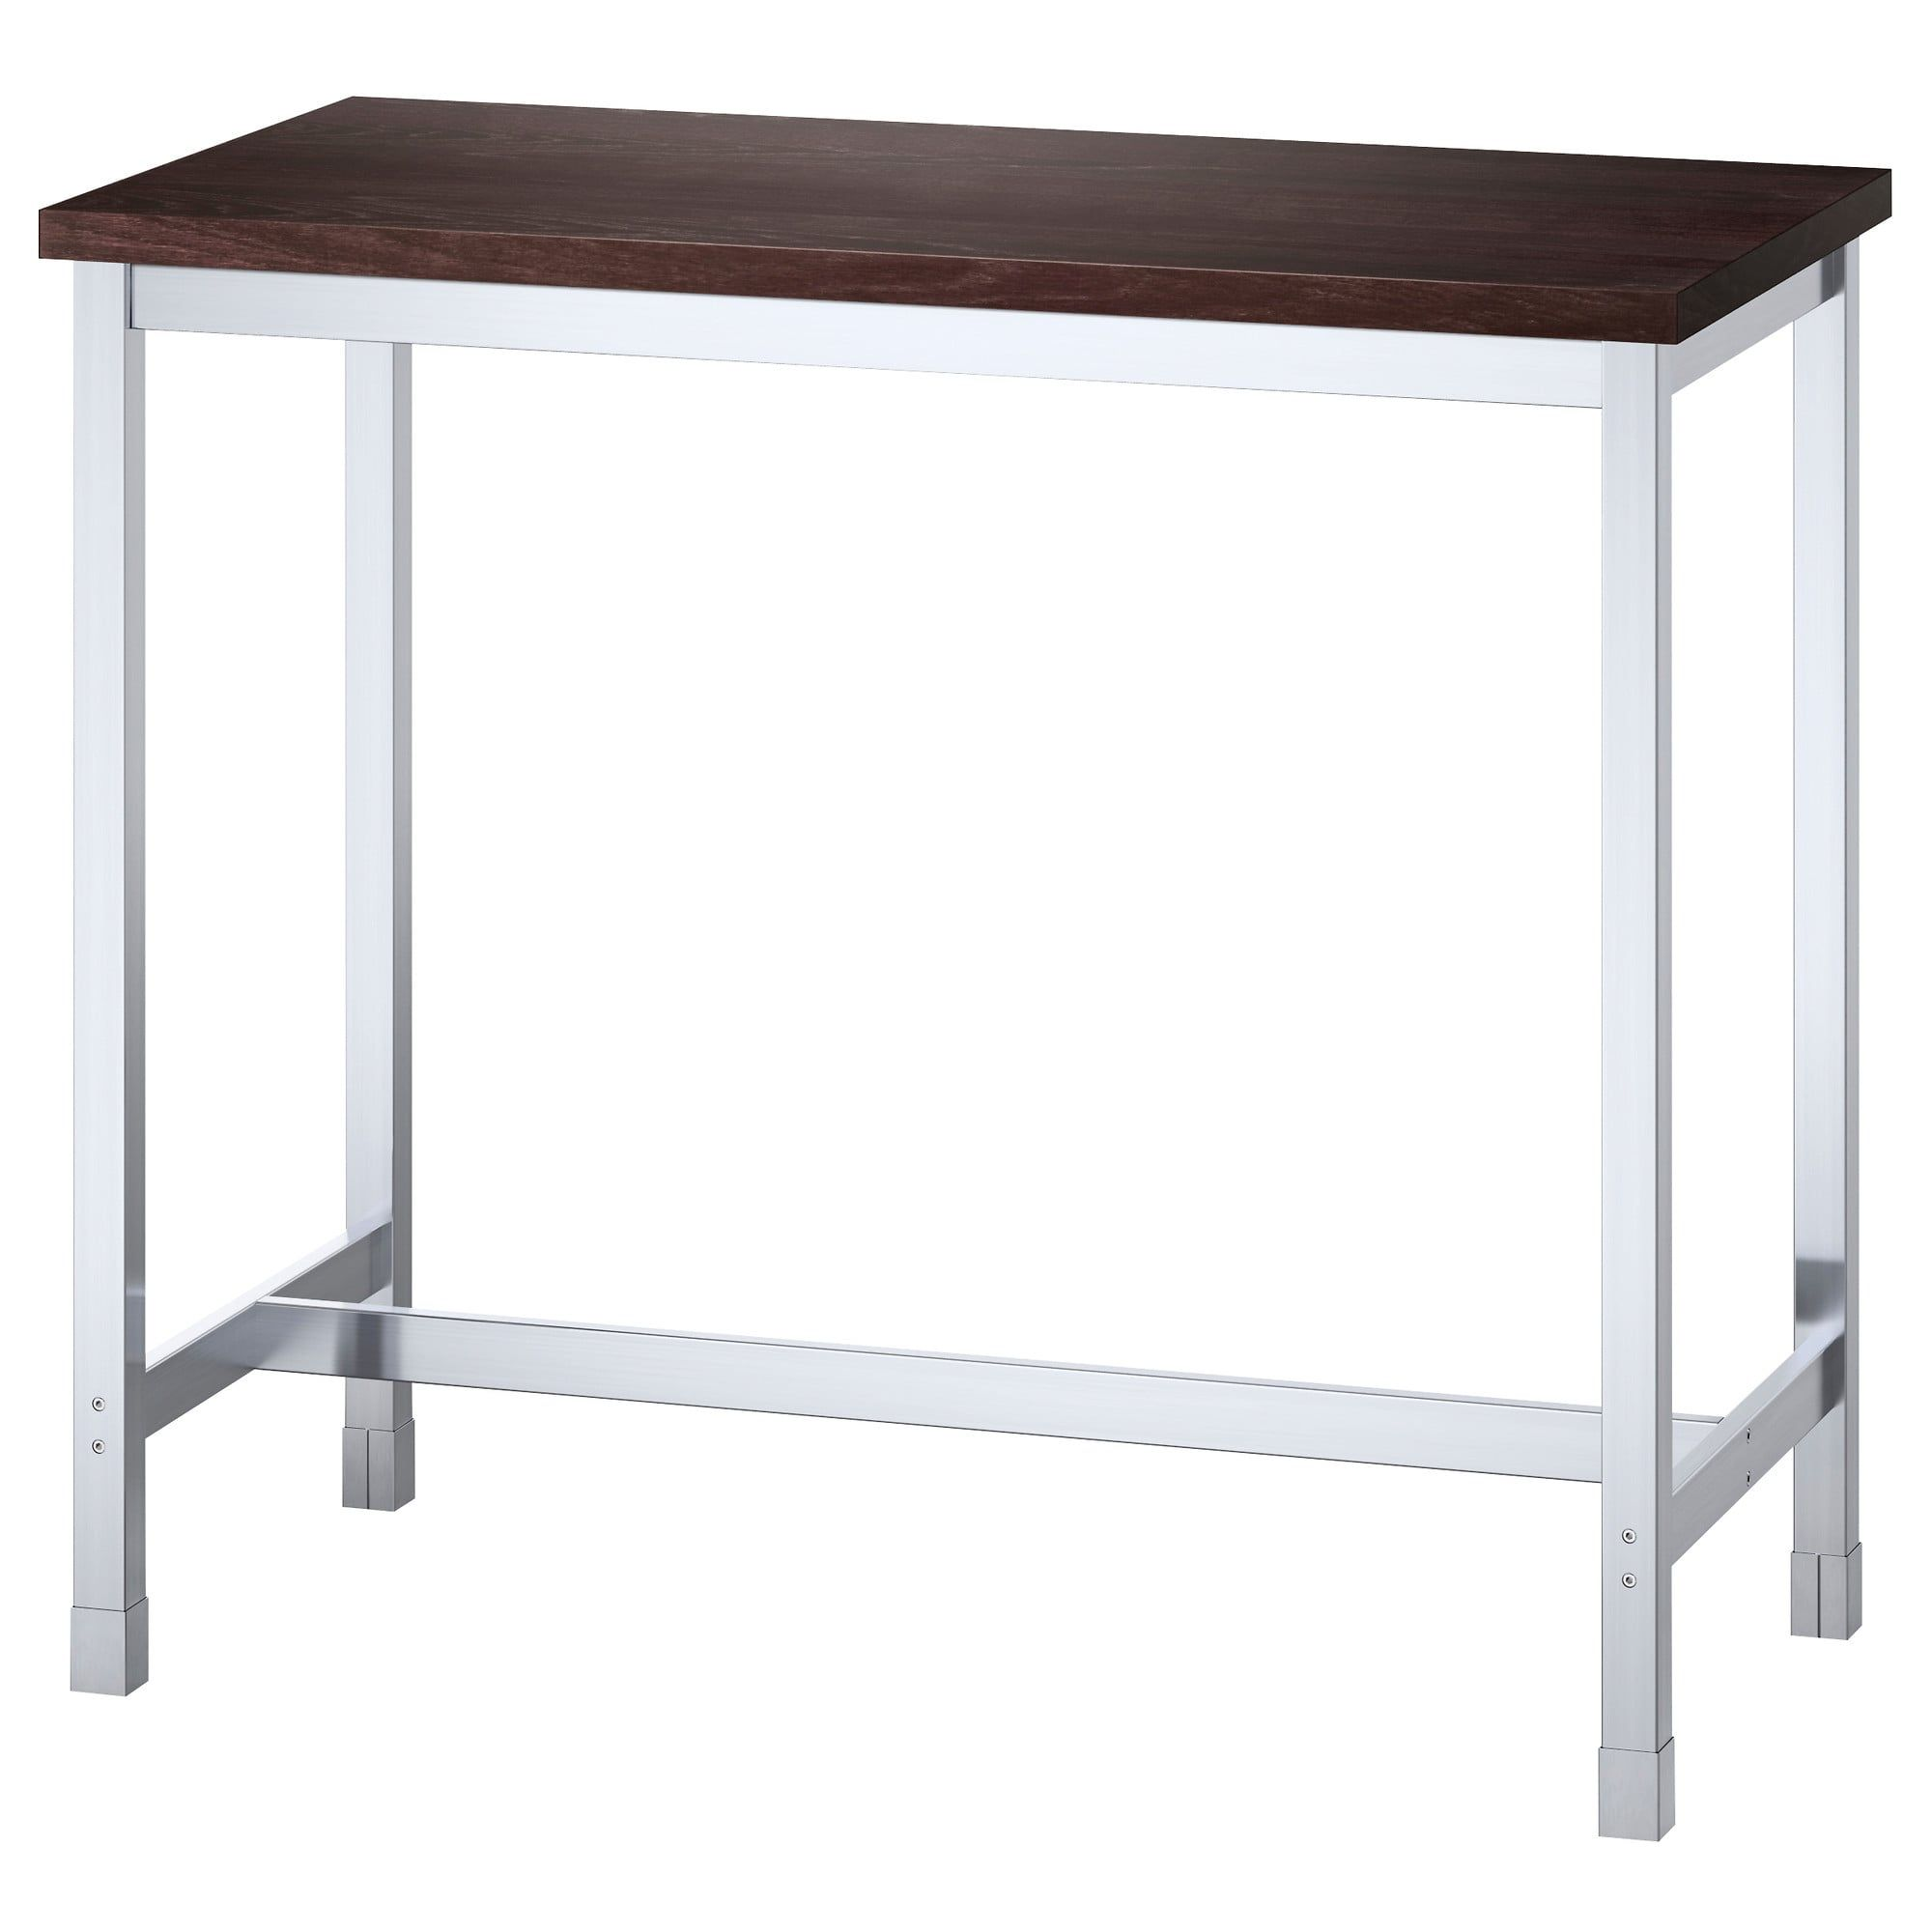 Table Haute De Bar Ikea Table De Bar Utby Brun Noir Acier Inoxydable Maison Meuble